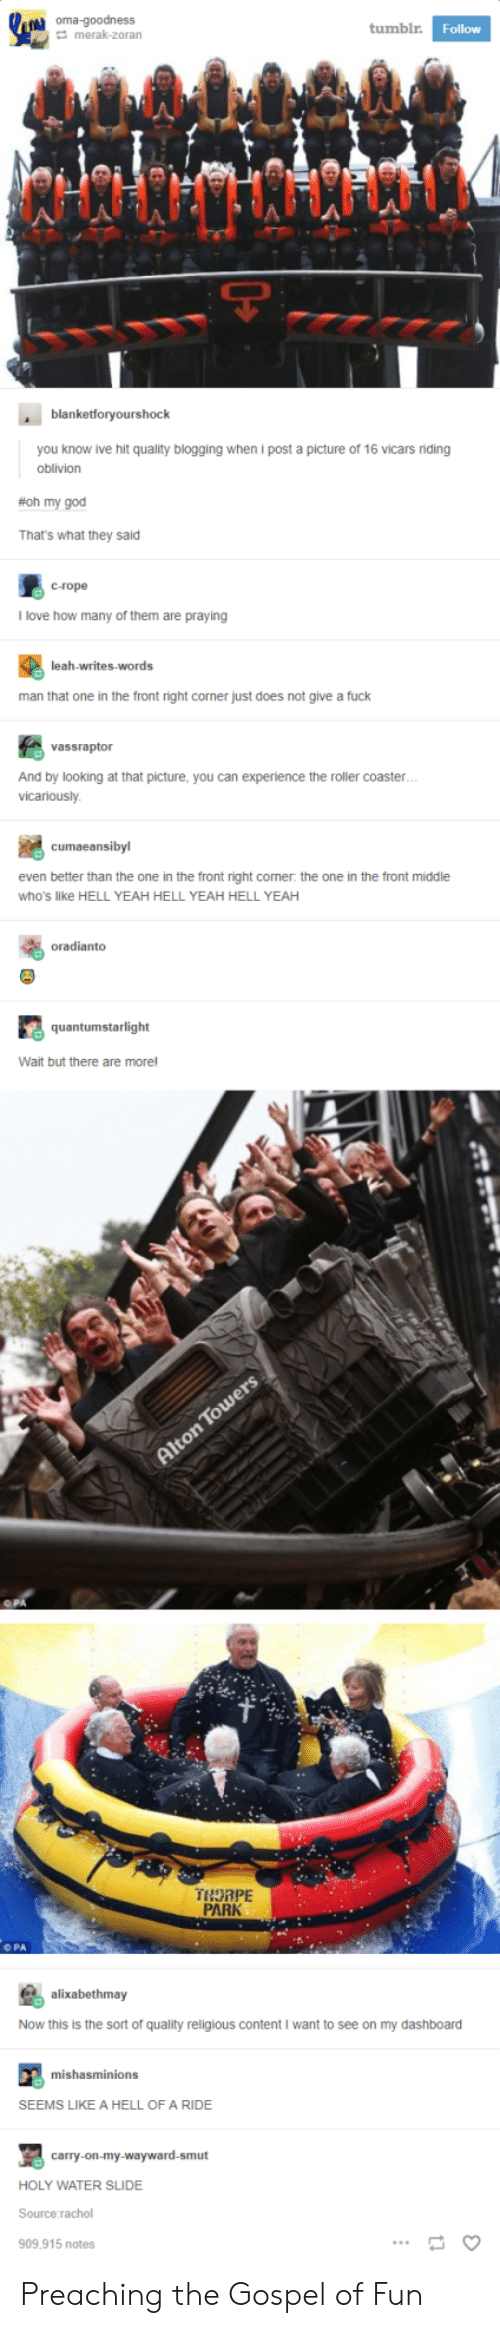 oma: oma-goodness  tumblr  Follow  merak-zoran  blanketforyourshock  you know ive hit quality blogging when i post a picture of 16 vicars riding  oblivion  #Oh my god  That's what they said  c-rope  l love how many of them are praying  man that one in the front right corner just does not give a fuck  vassraptor  And by looking at that picture, you can experience the roller coaster  vicariously  even better than the one in the front right comer. the one in the front middle  who's like HELL YEAH HELL YEAH HELL YEAH  oradianto  quantumstarlight  Wait but there are morel  THORPE  PARK  O PA  alixabethmay  Now this is the sort of quality religious content I want to see on my dashboard  mishasminions  SEEMS LIKE A HELL OF A RIDE  carry-on-my-wayward-smut  HOLY WATER SLIDE  Source rachol  909,915 notes Preaching the Gospel of Fun